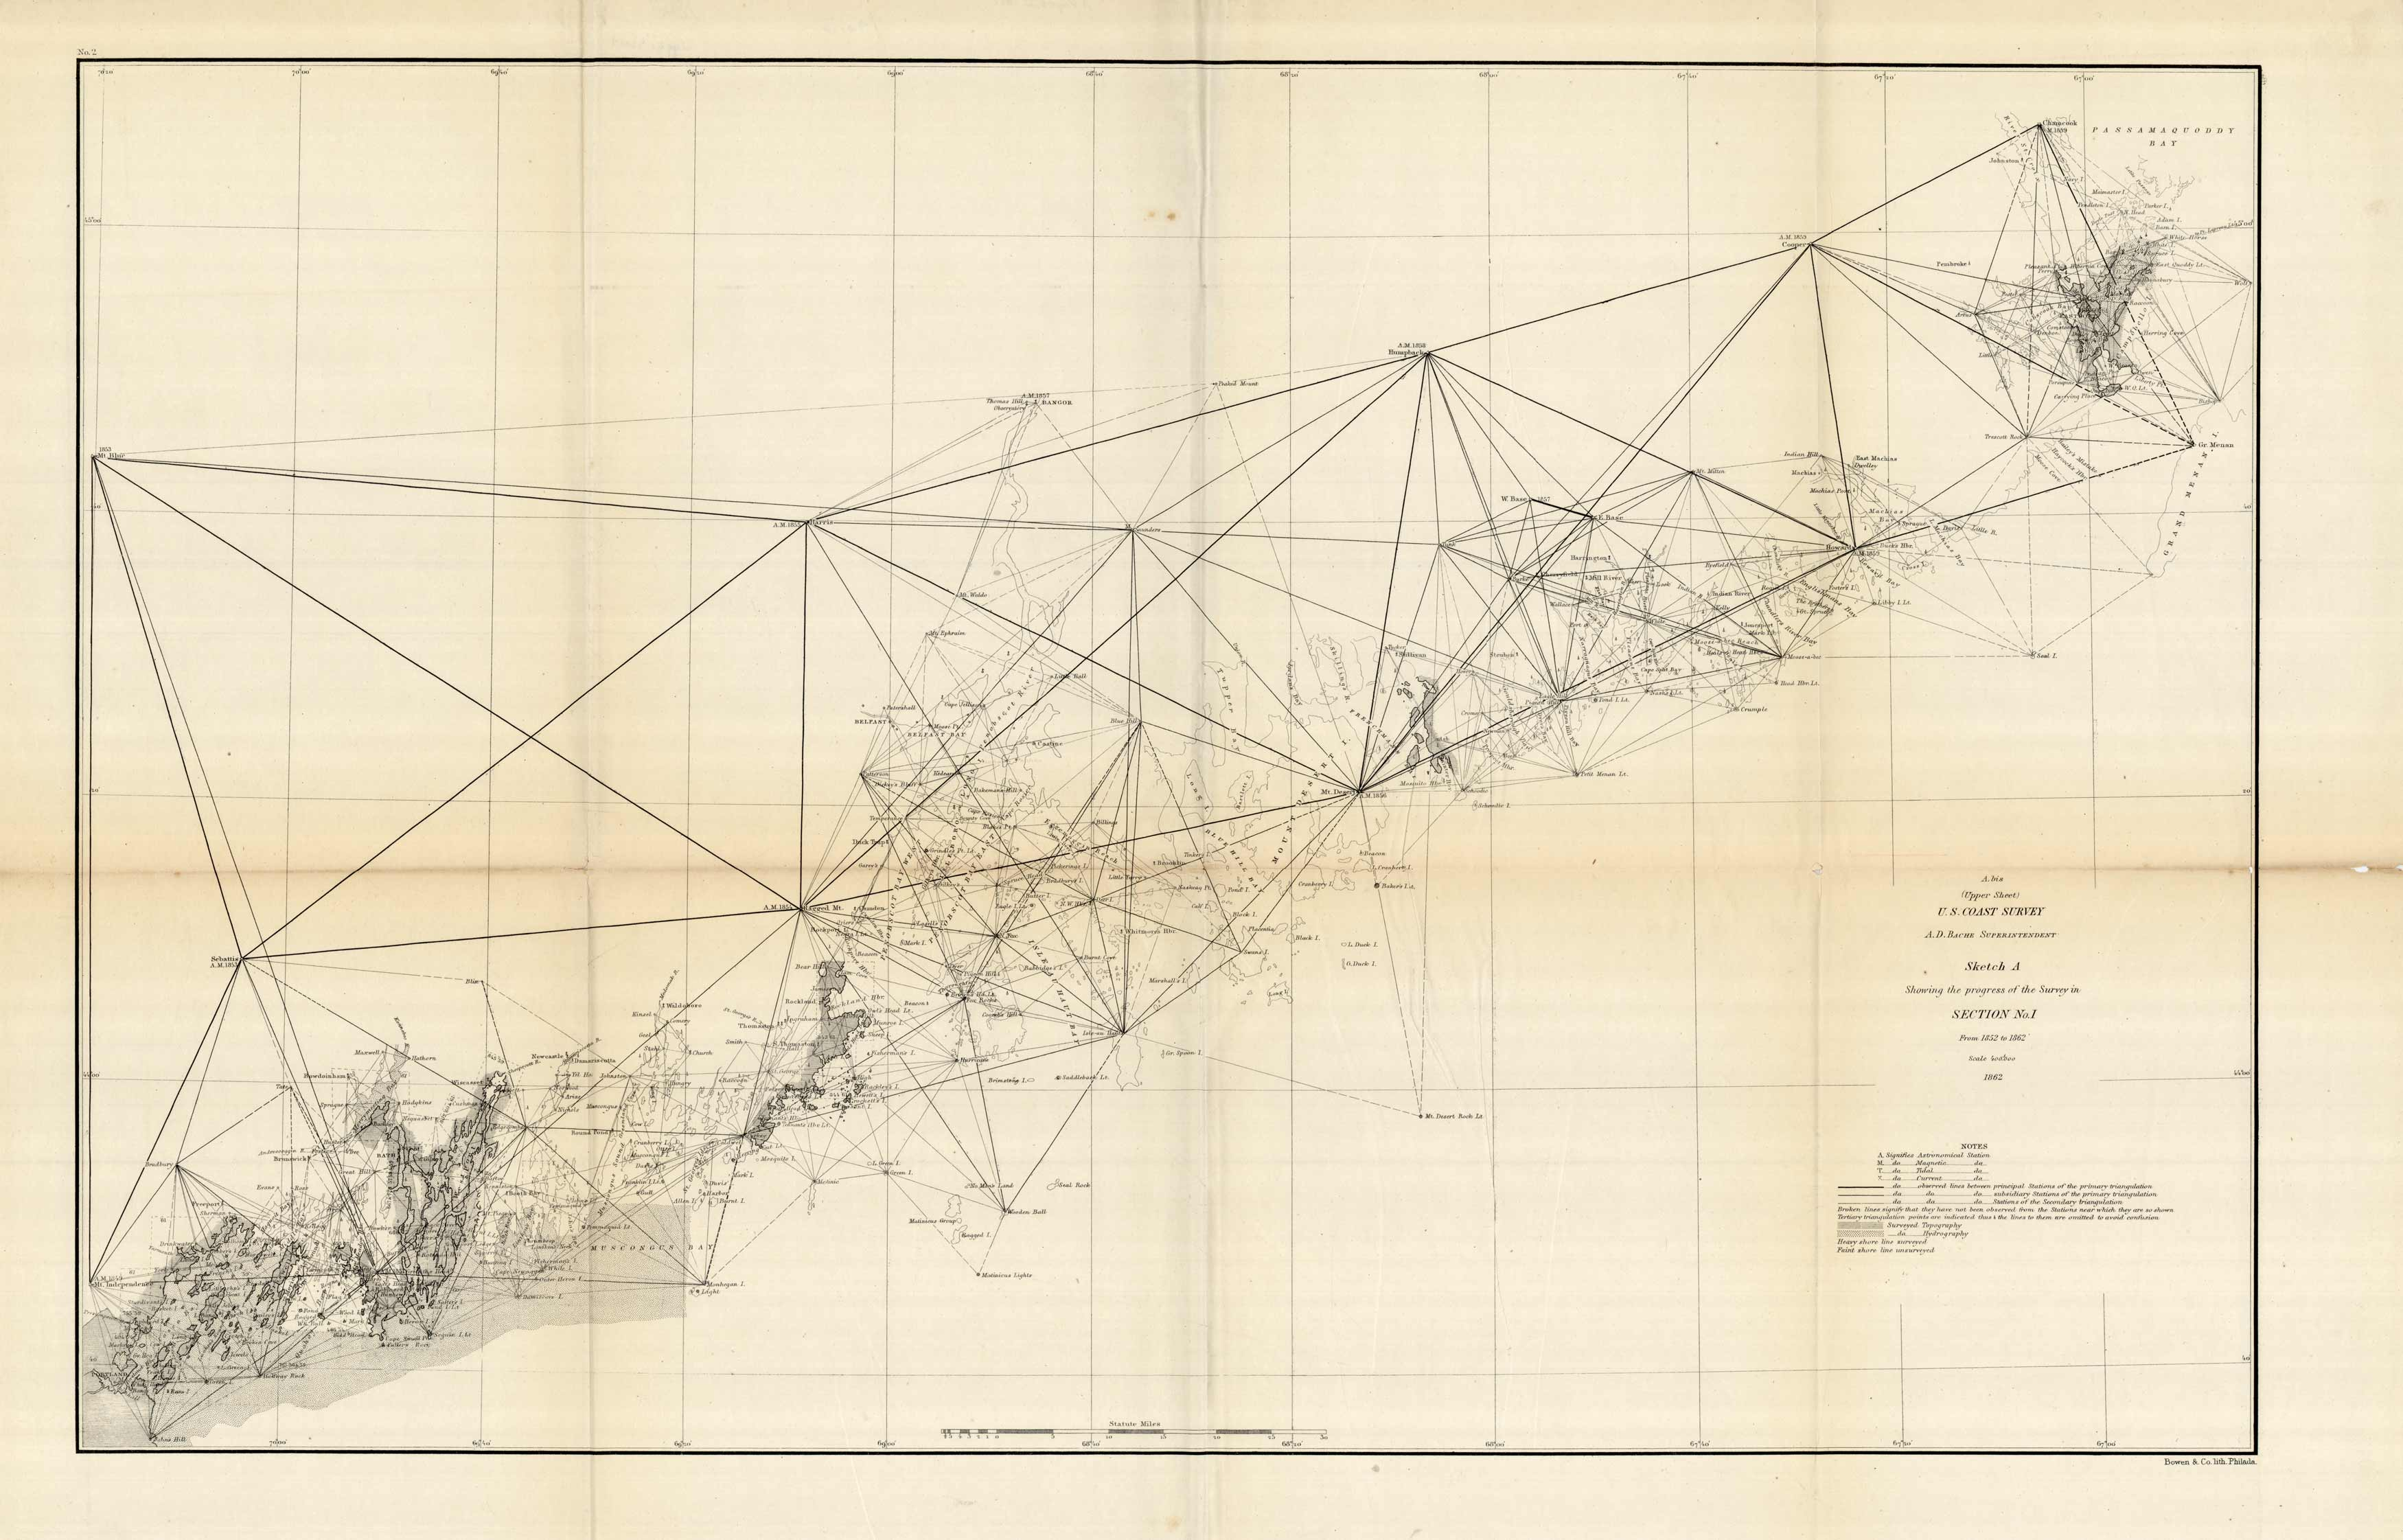 (Upper Sheet) U.S. Coast Survey - Sketch A Showing the Progress of the Survey in Section No. I - 1862